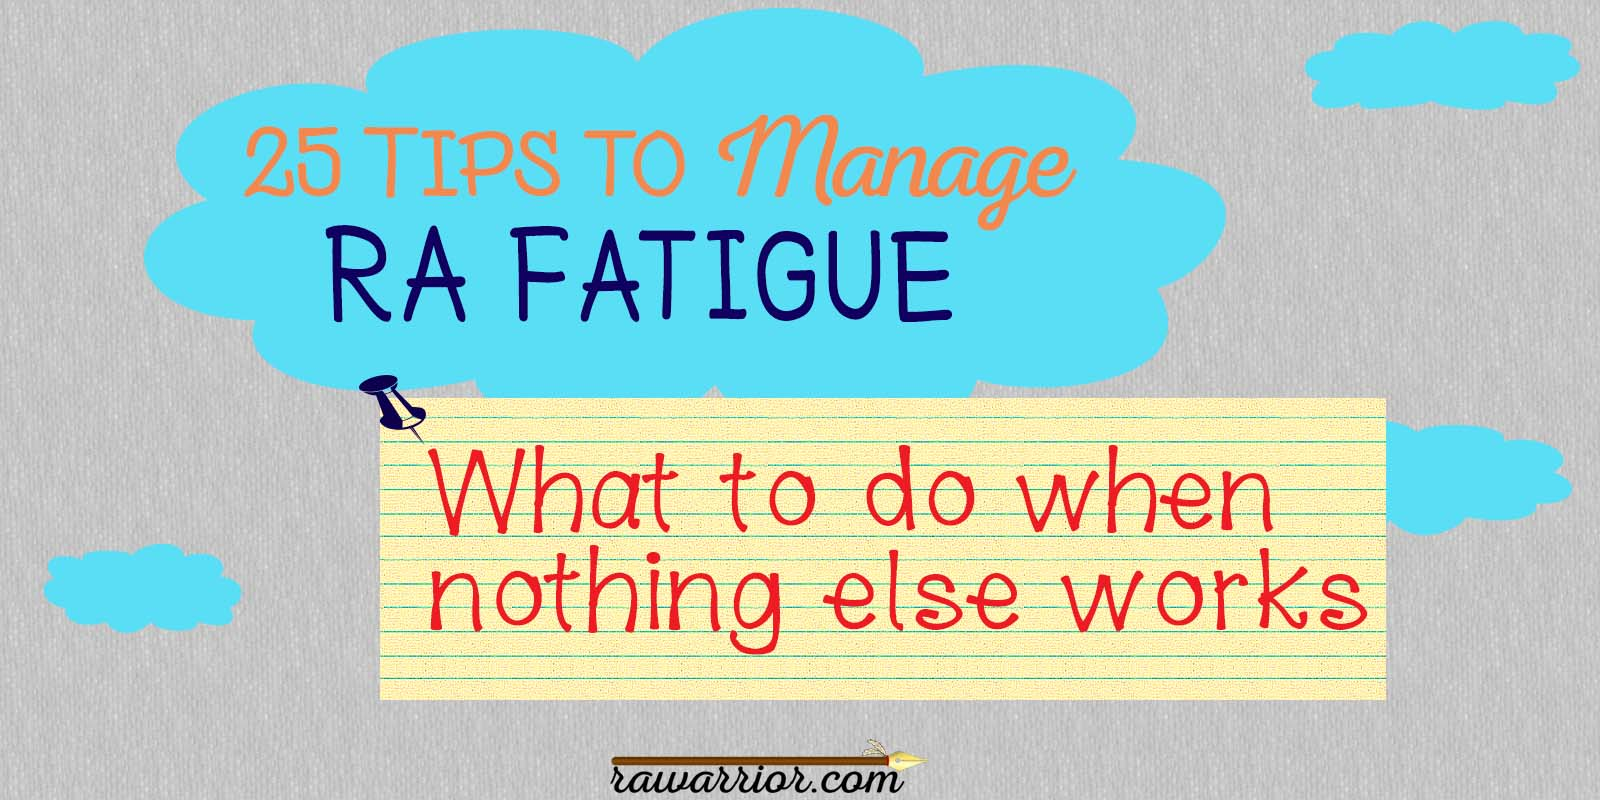 25 tips manage rheumatoid arthritis fatigue